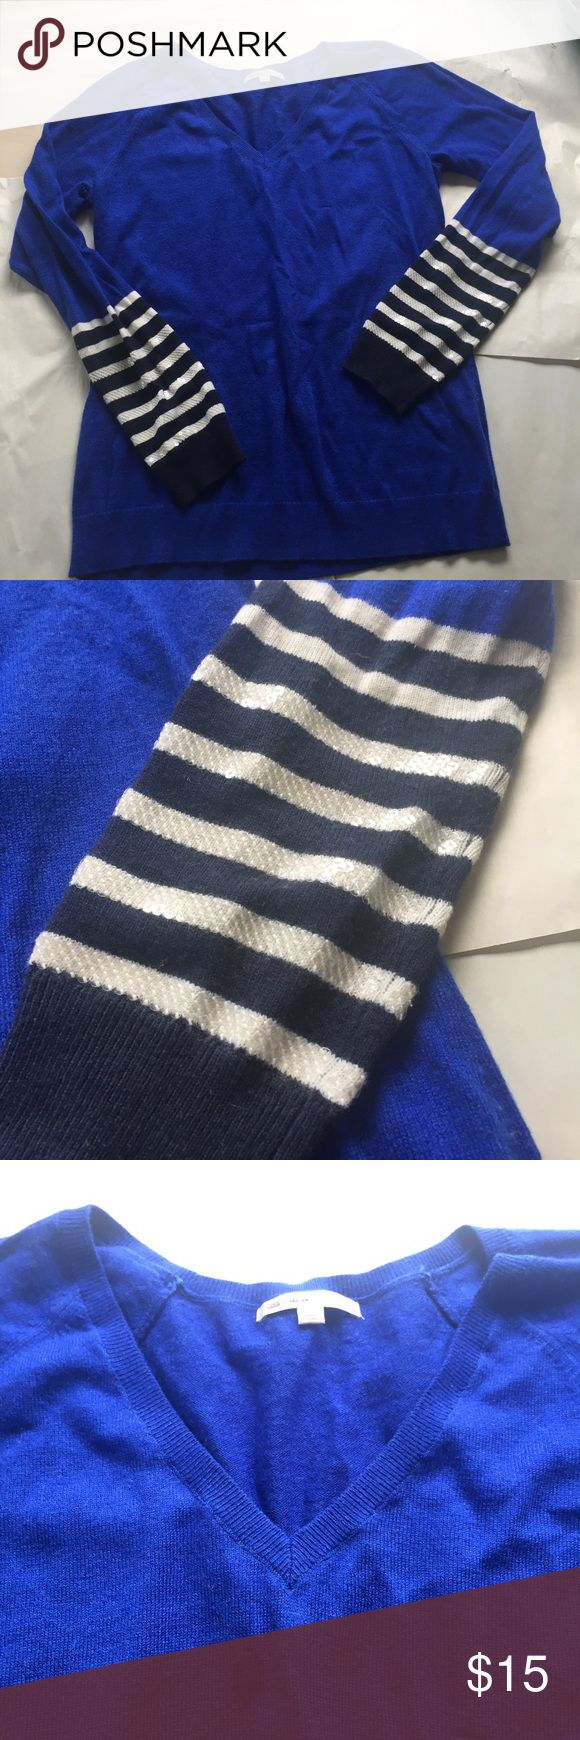 GAP Blue and White Sweater with Sequin Details Gorgeous royal blue colored GAP sweater with a flattering v neck. The sleeve cuffs are white and navy blue stripes. The white stripes have really nice white sequins on the white stripes. 57% nylon, 28% wool, and 15% acrylic.   same or next day shipping on all orders (except weekends)make me an offer! GAP Sweaters V-Necks